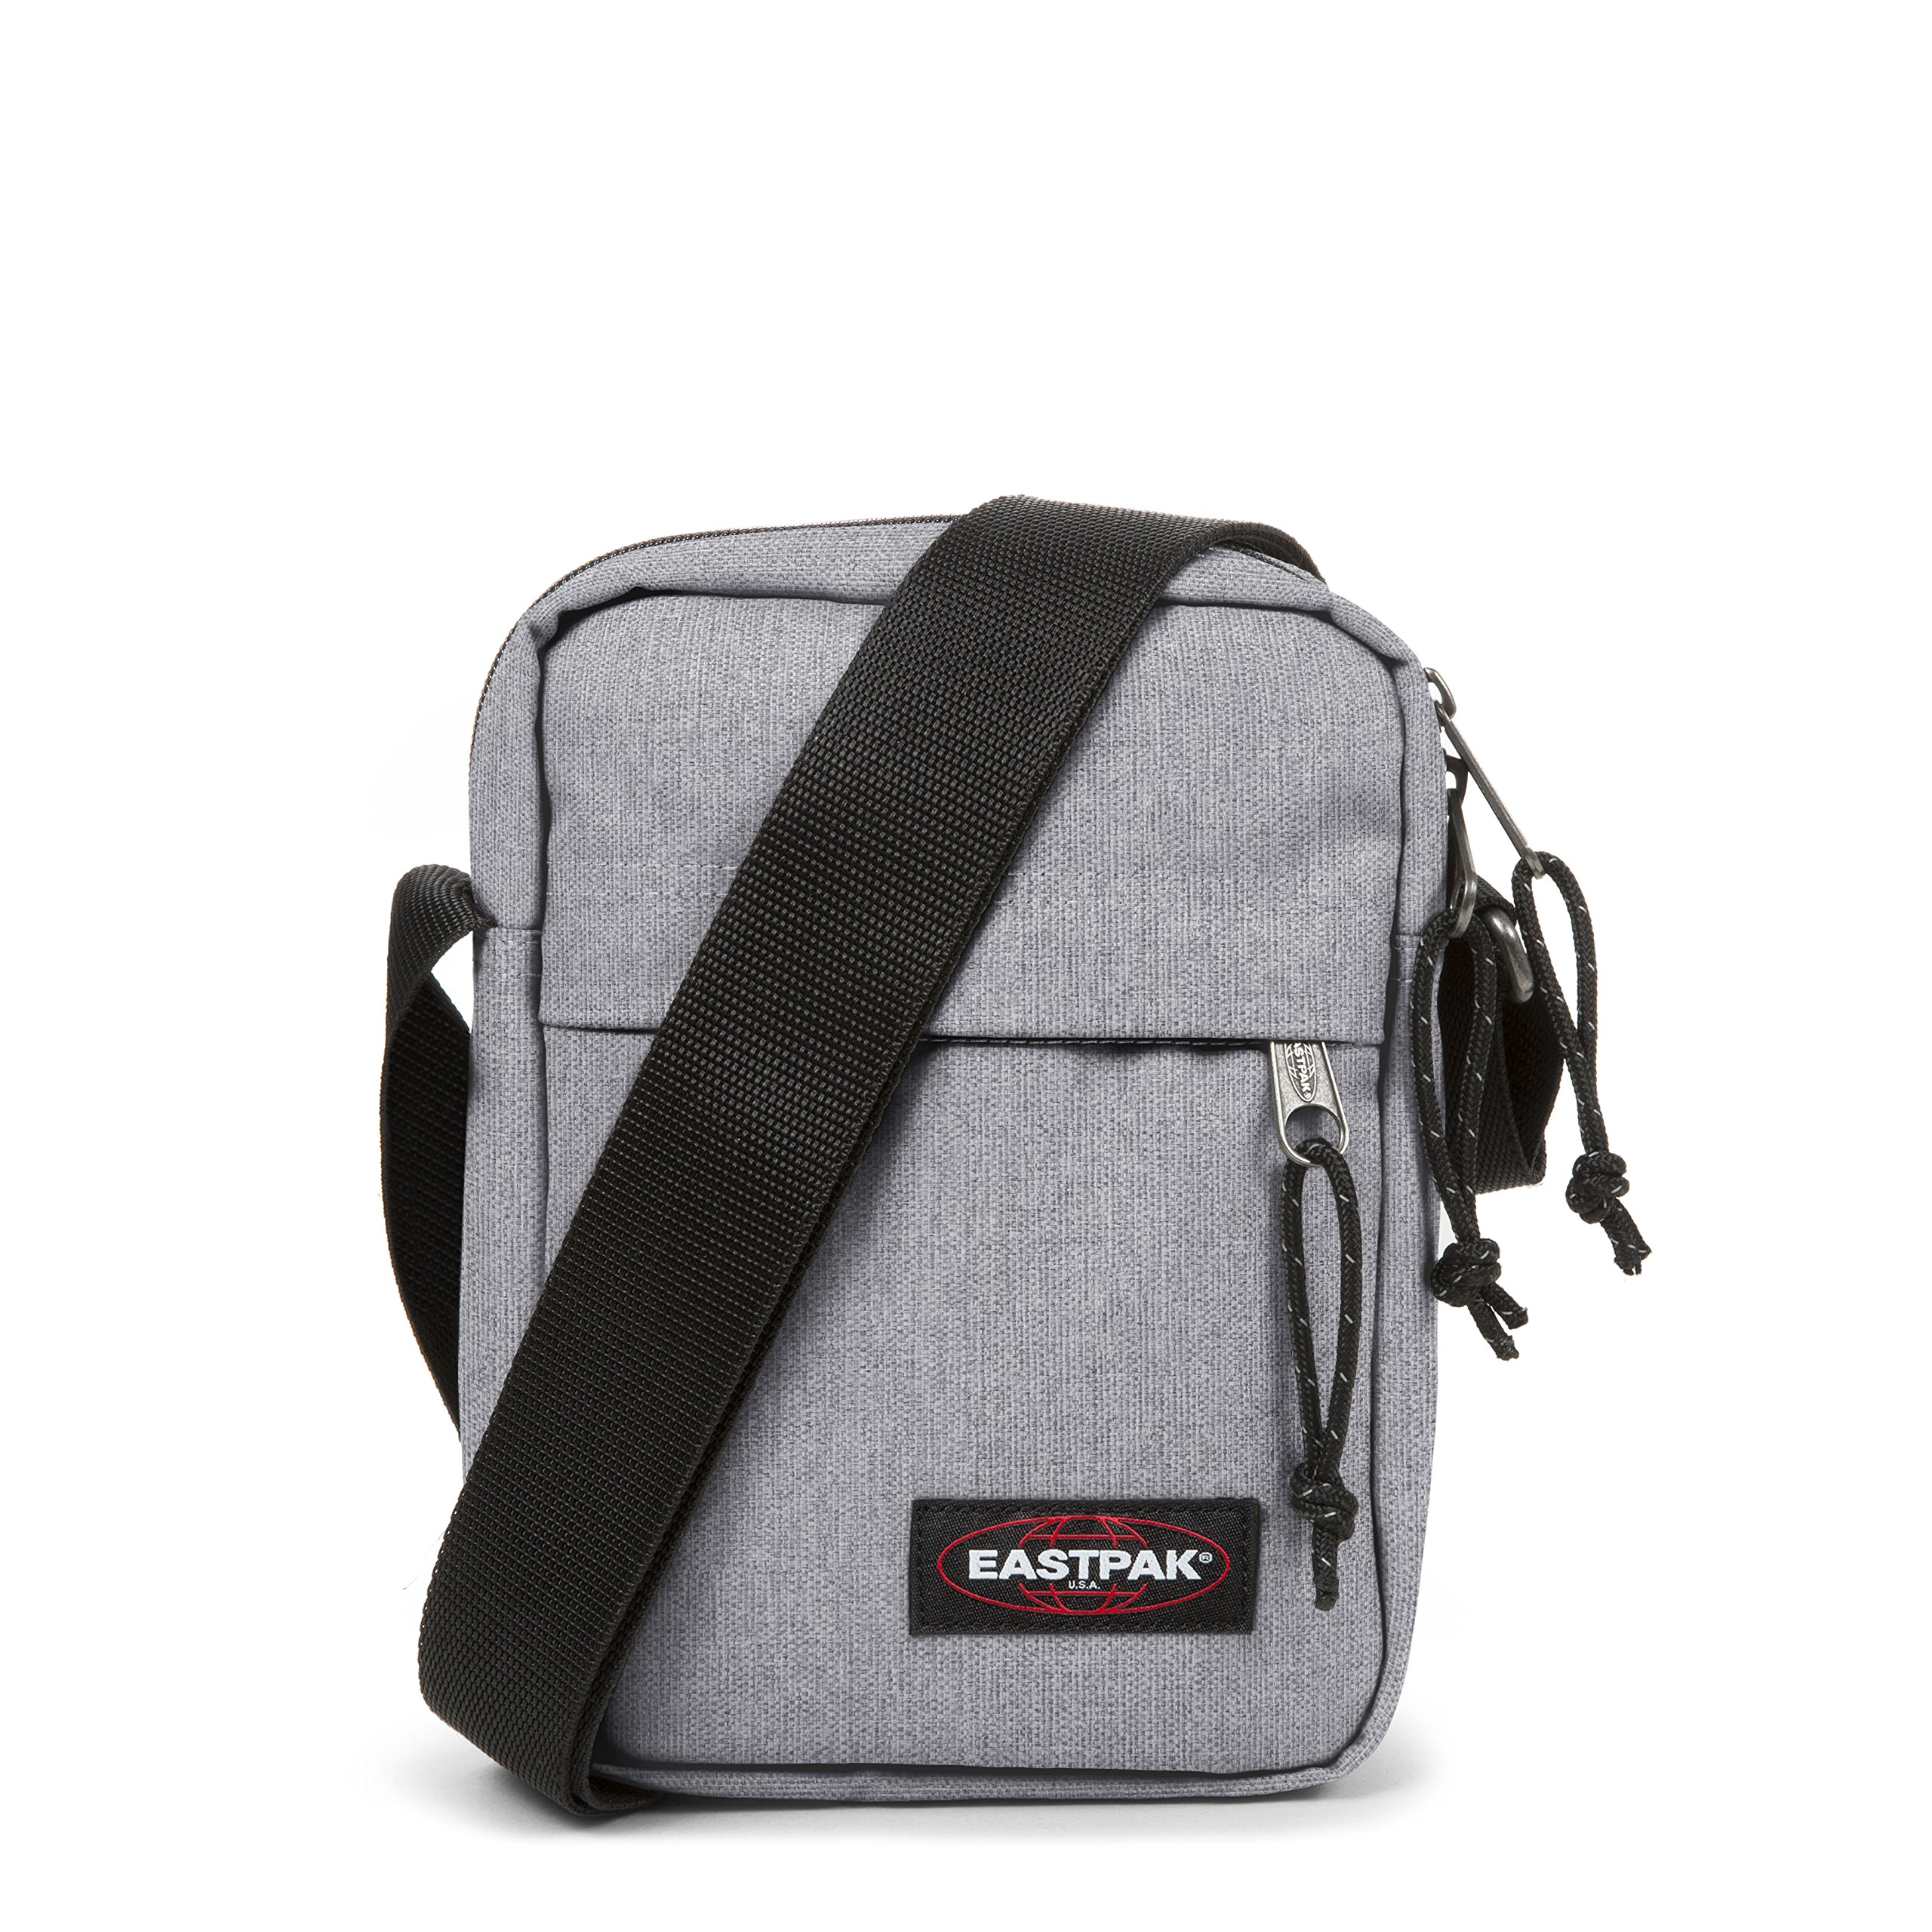 Eastpak The One Bolso bandolera, 21 cm, 2.5 L, Gris (Sunday Grey